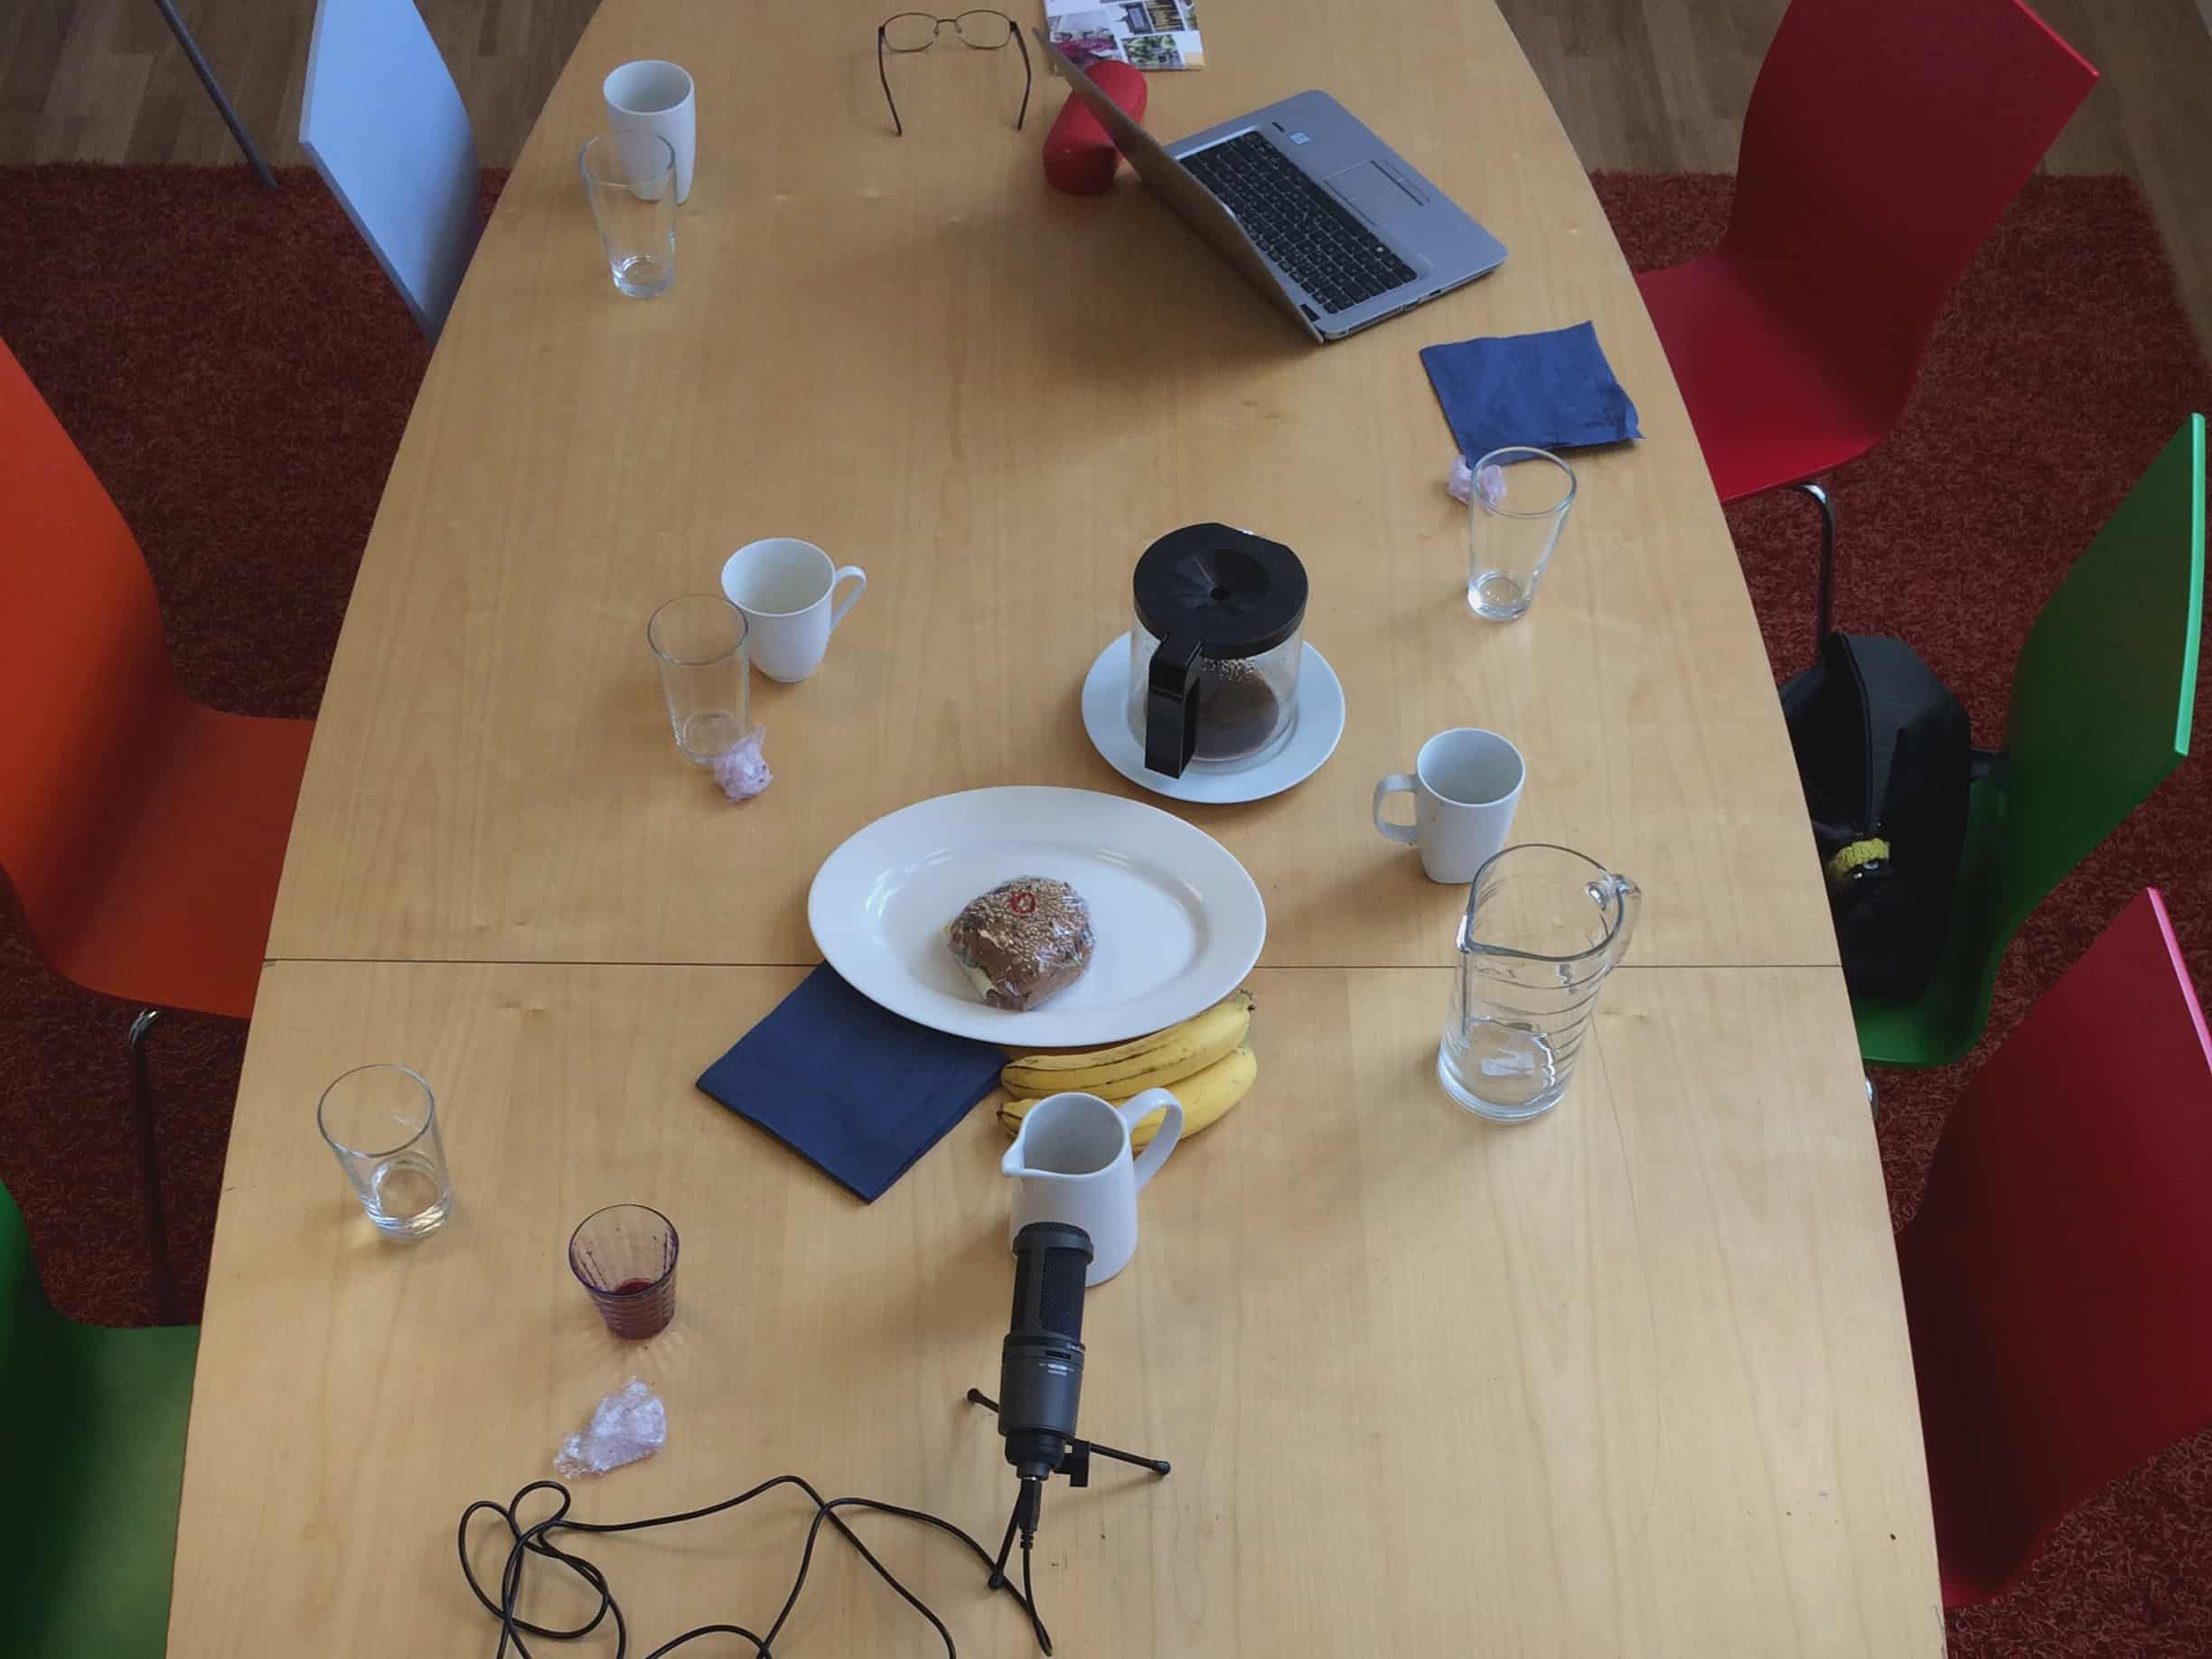 a table after a seminar